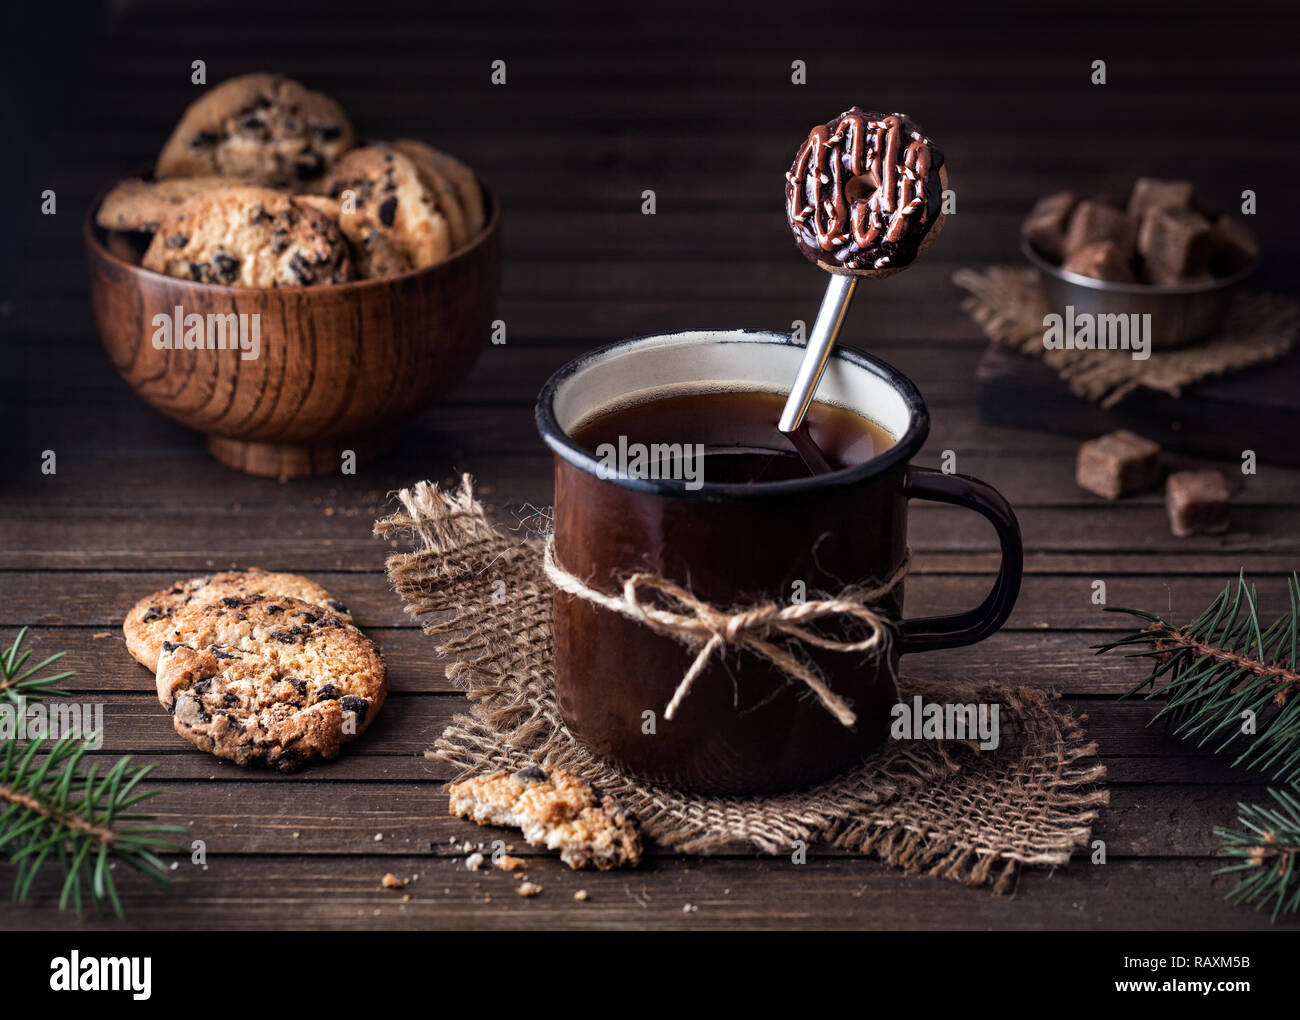 Tasty Spoon With Doughnut From Polymer Clay In The Mug With Tea Near Chocolate Cookies On Wooden Background Stock Photo Alamy